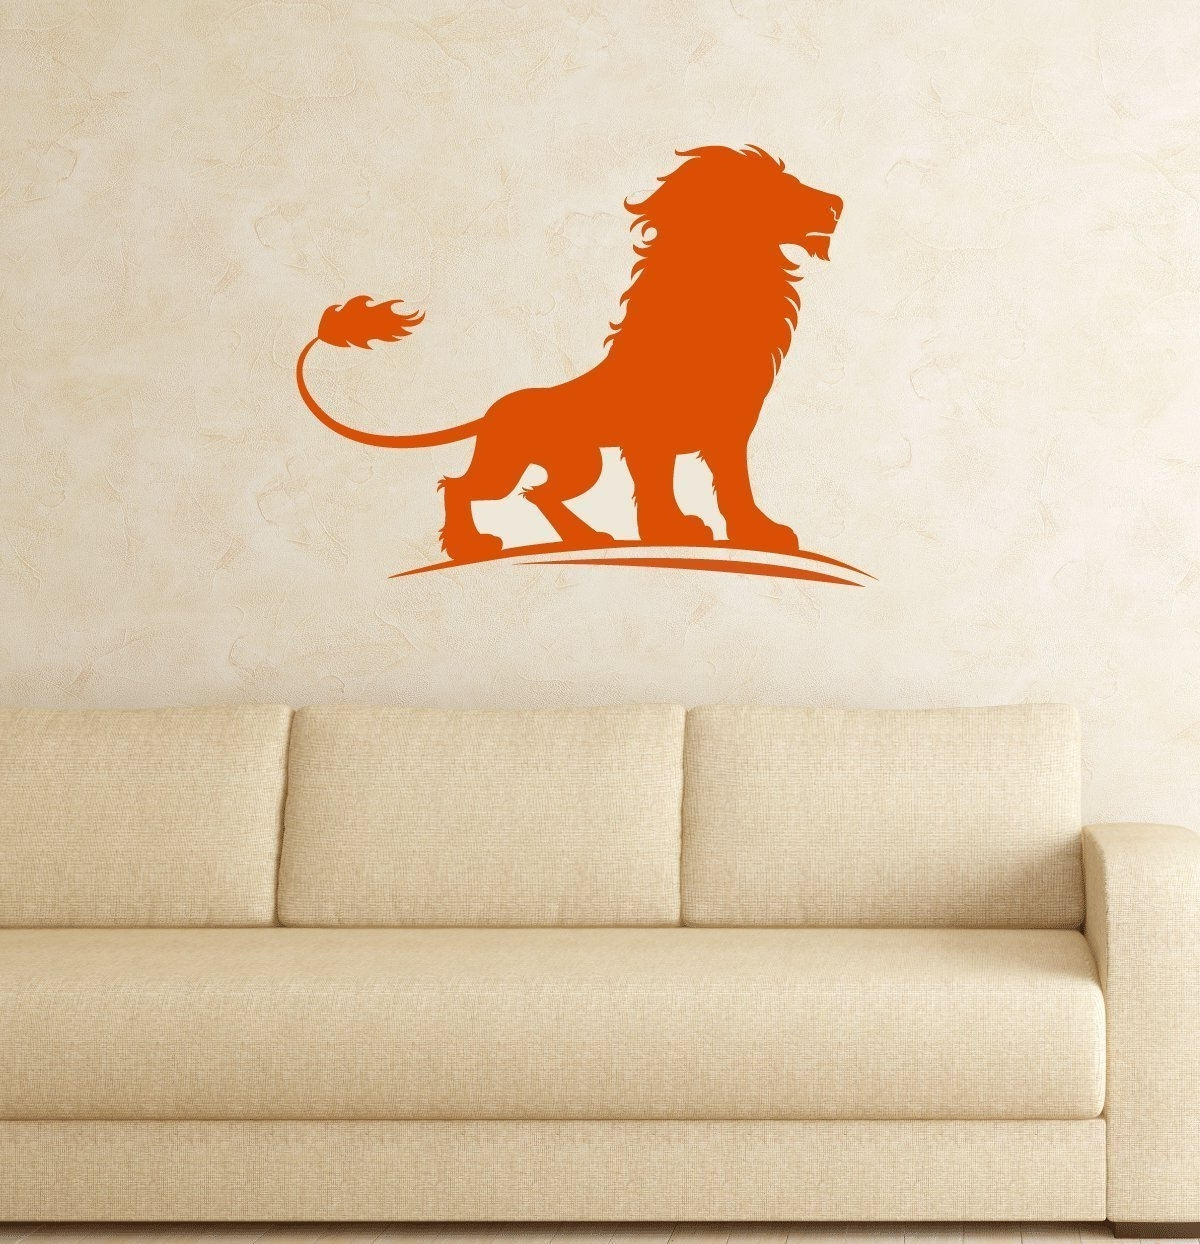 Most Recent Lion Vinyl Decal, King Of The Jungle Wall Art Sticker For Kids Room Inside Lion King Wall Art (View 12 of 20)